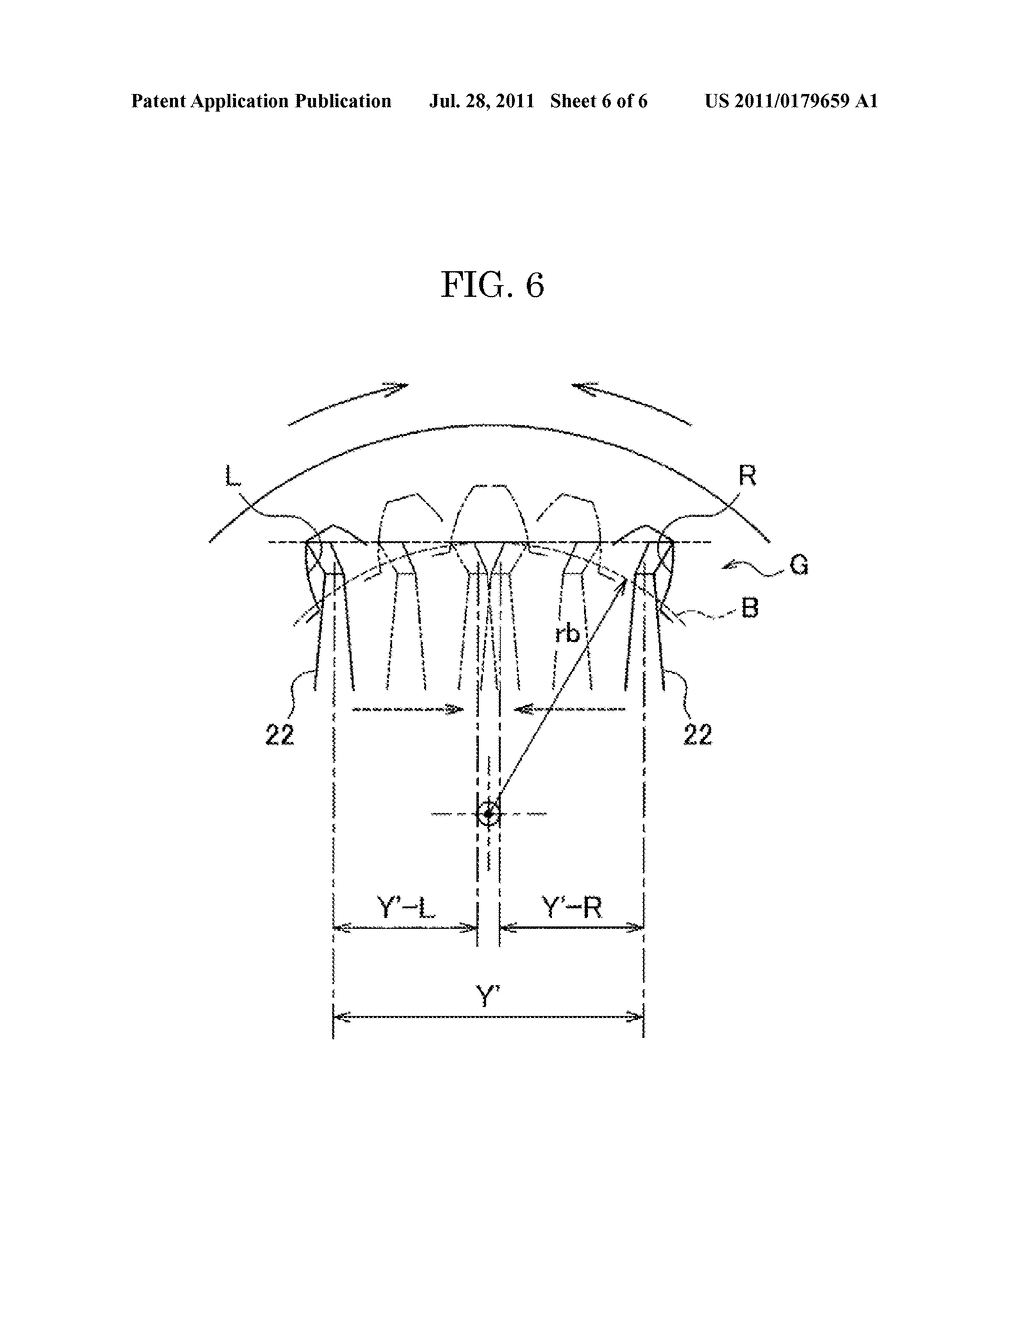 20110179659_07 method of measuring an involute gear tooth profile diagram